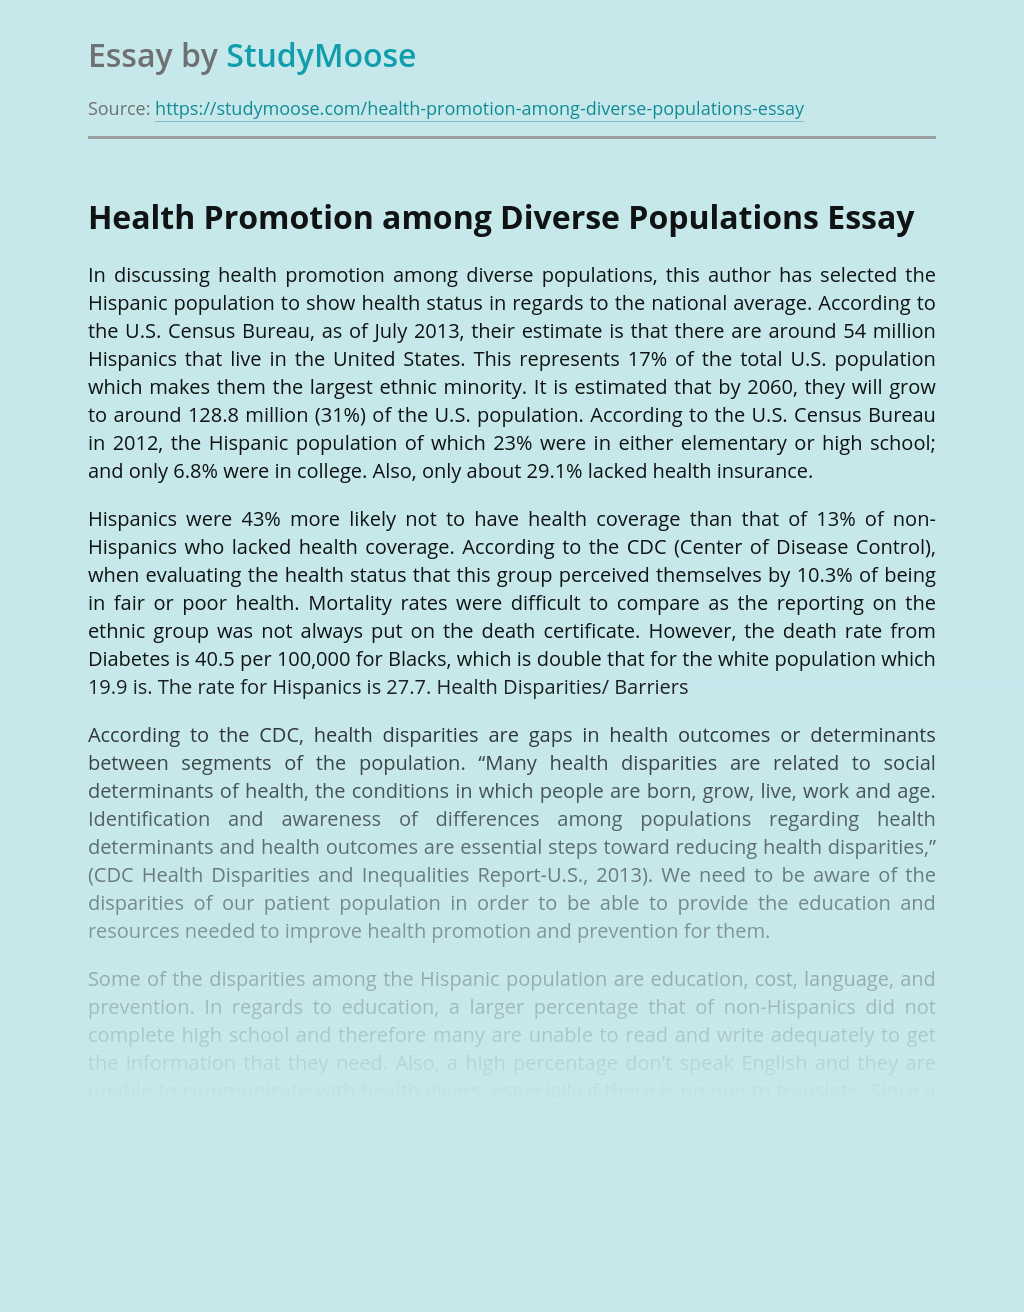 Health Promotion among Diverse Populations